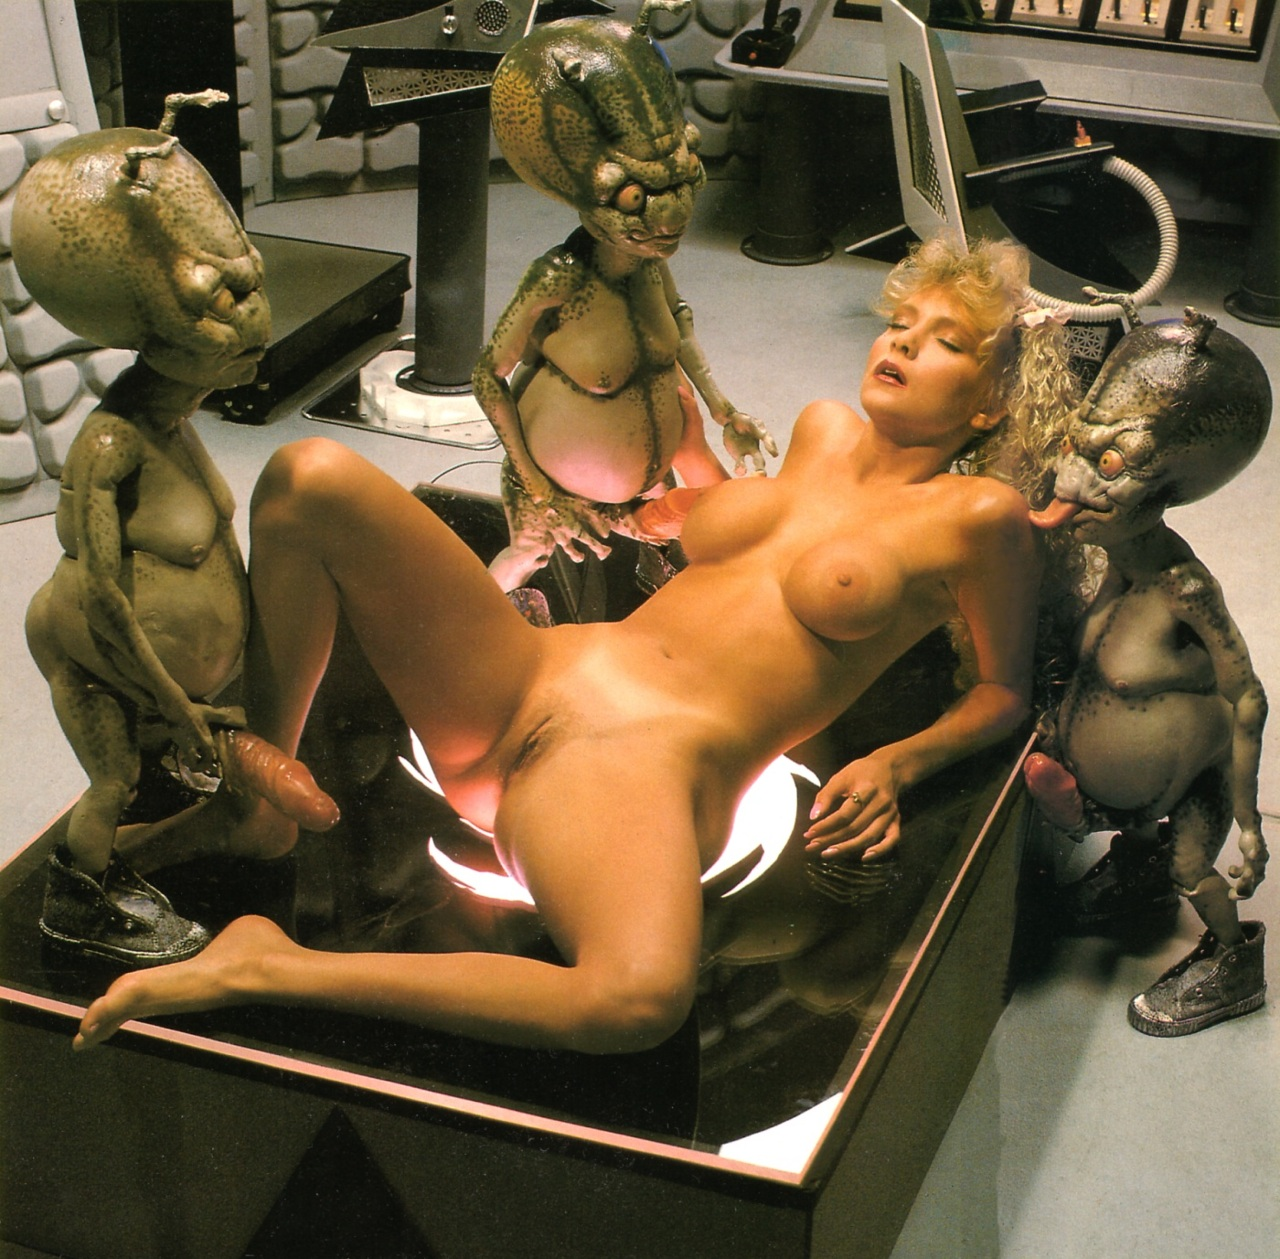 Alien porno video sexy picture